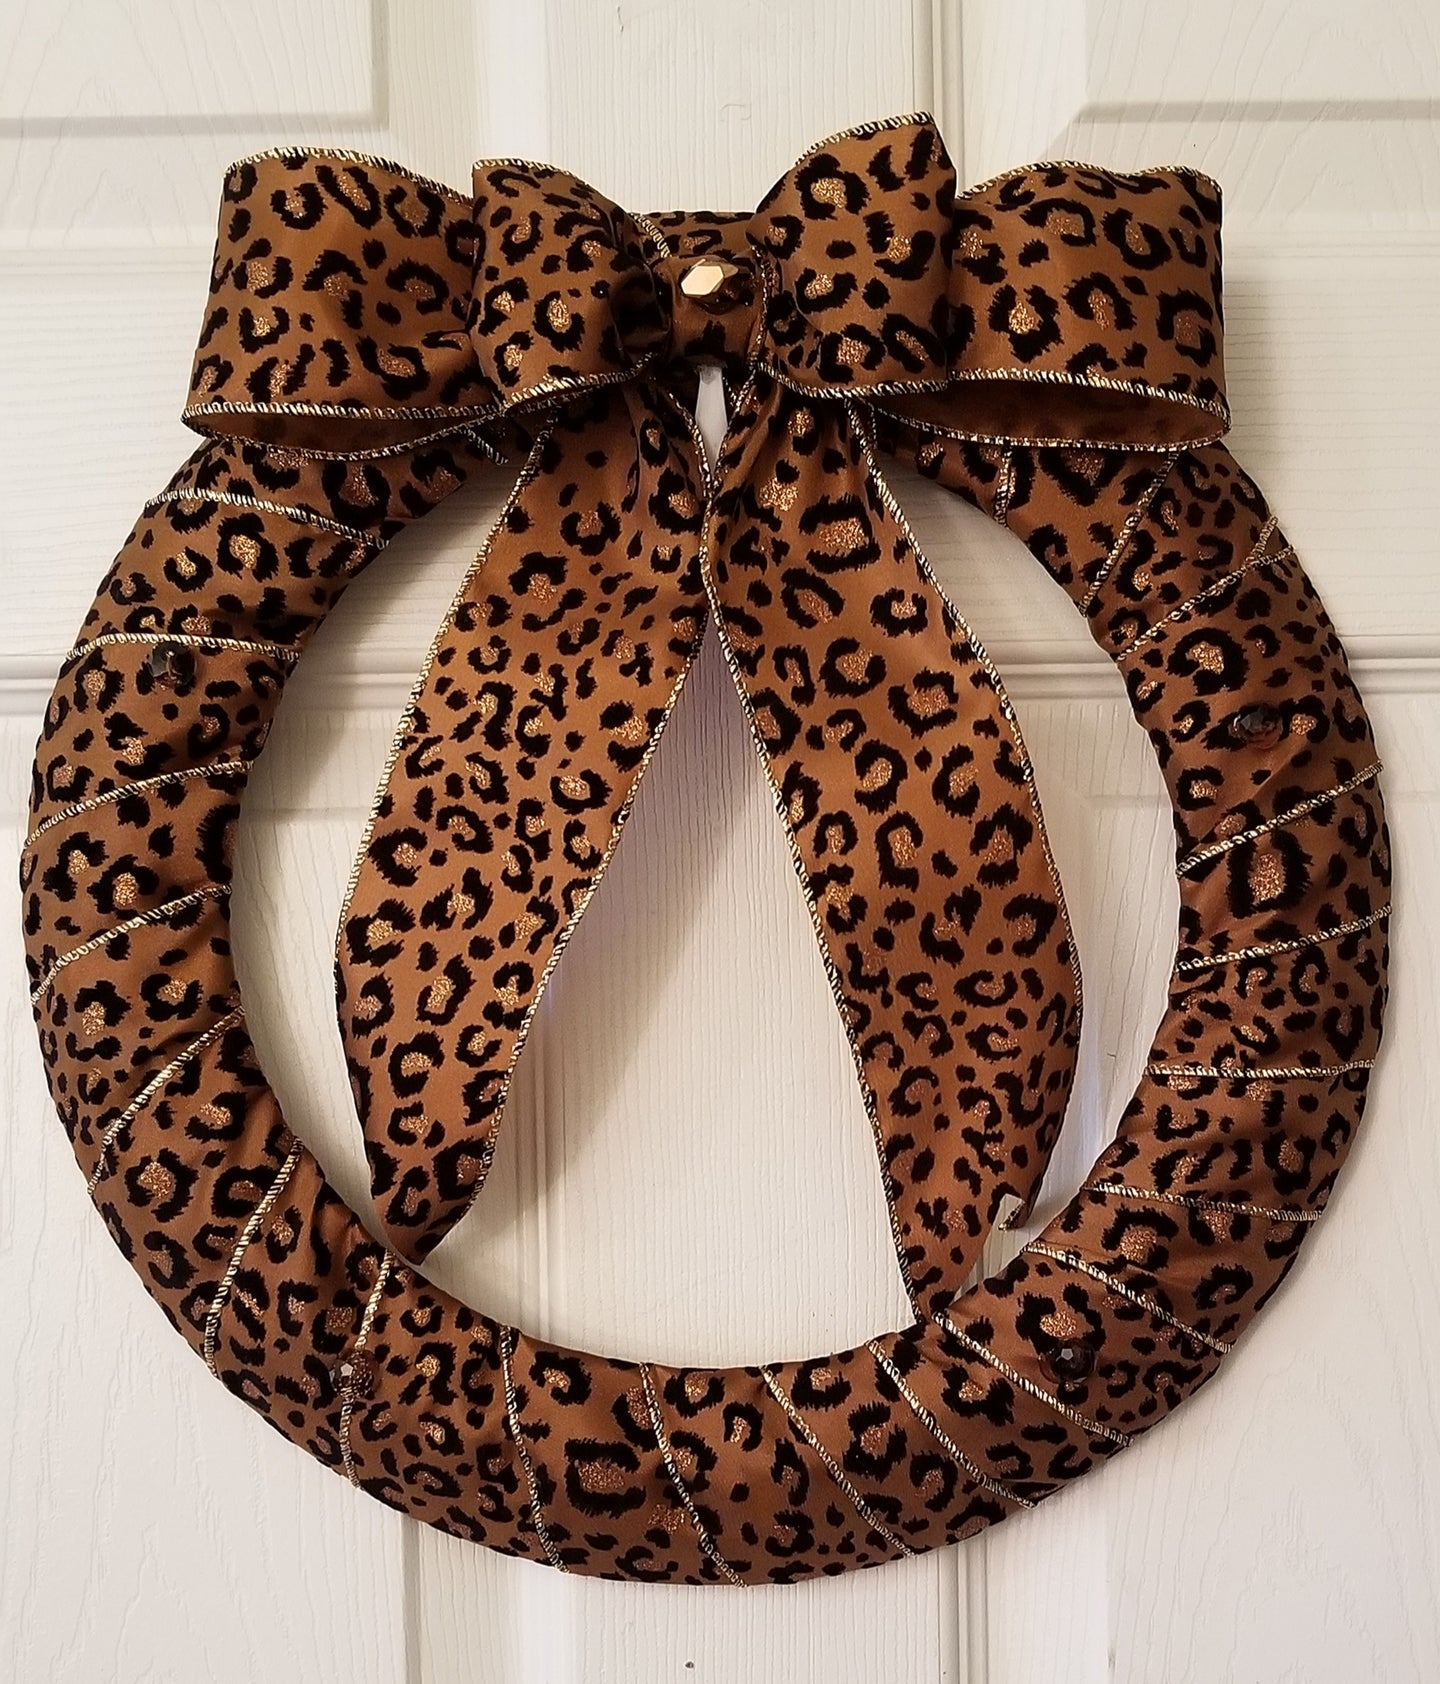 Animal Print Wreath 14